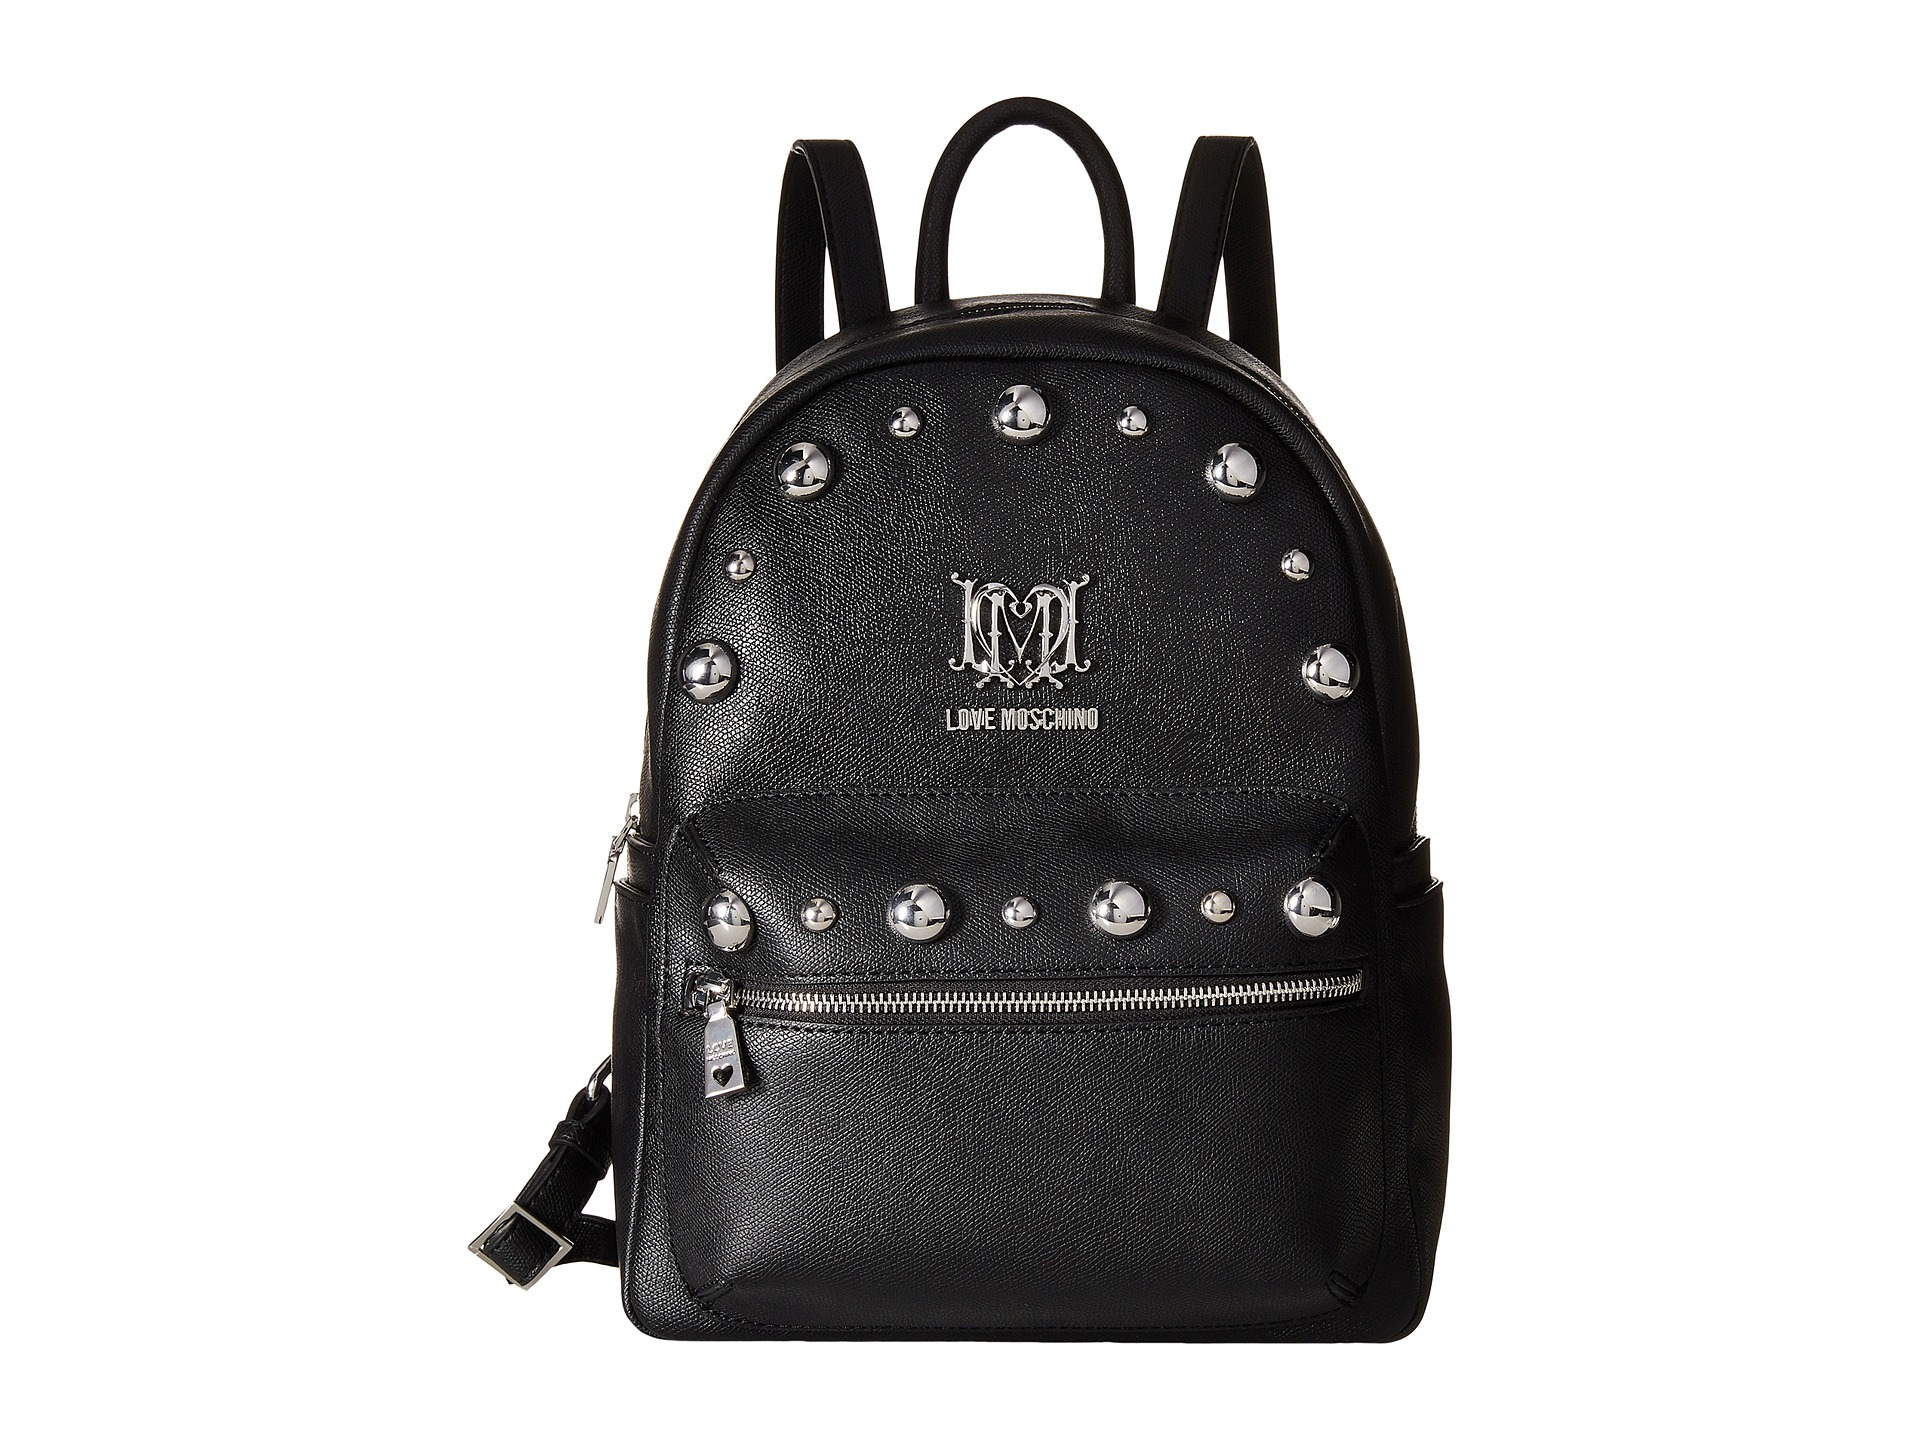 42e889789eda Lyst - Love Moschino Studs Backpack in Black